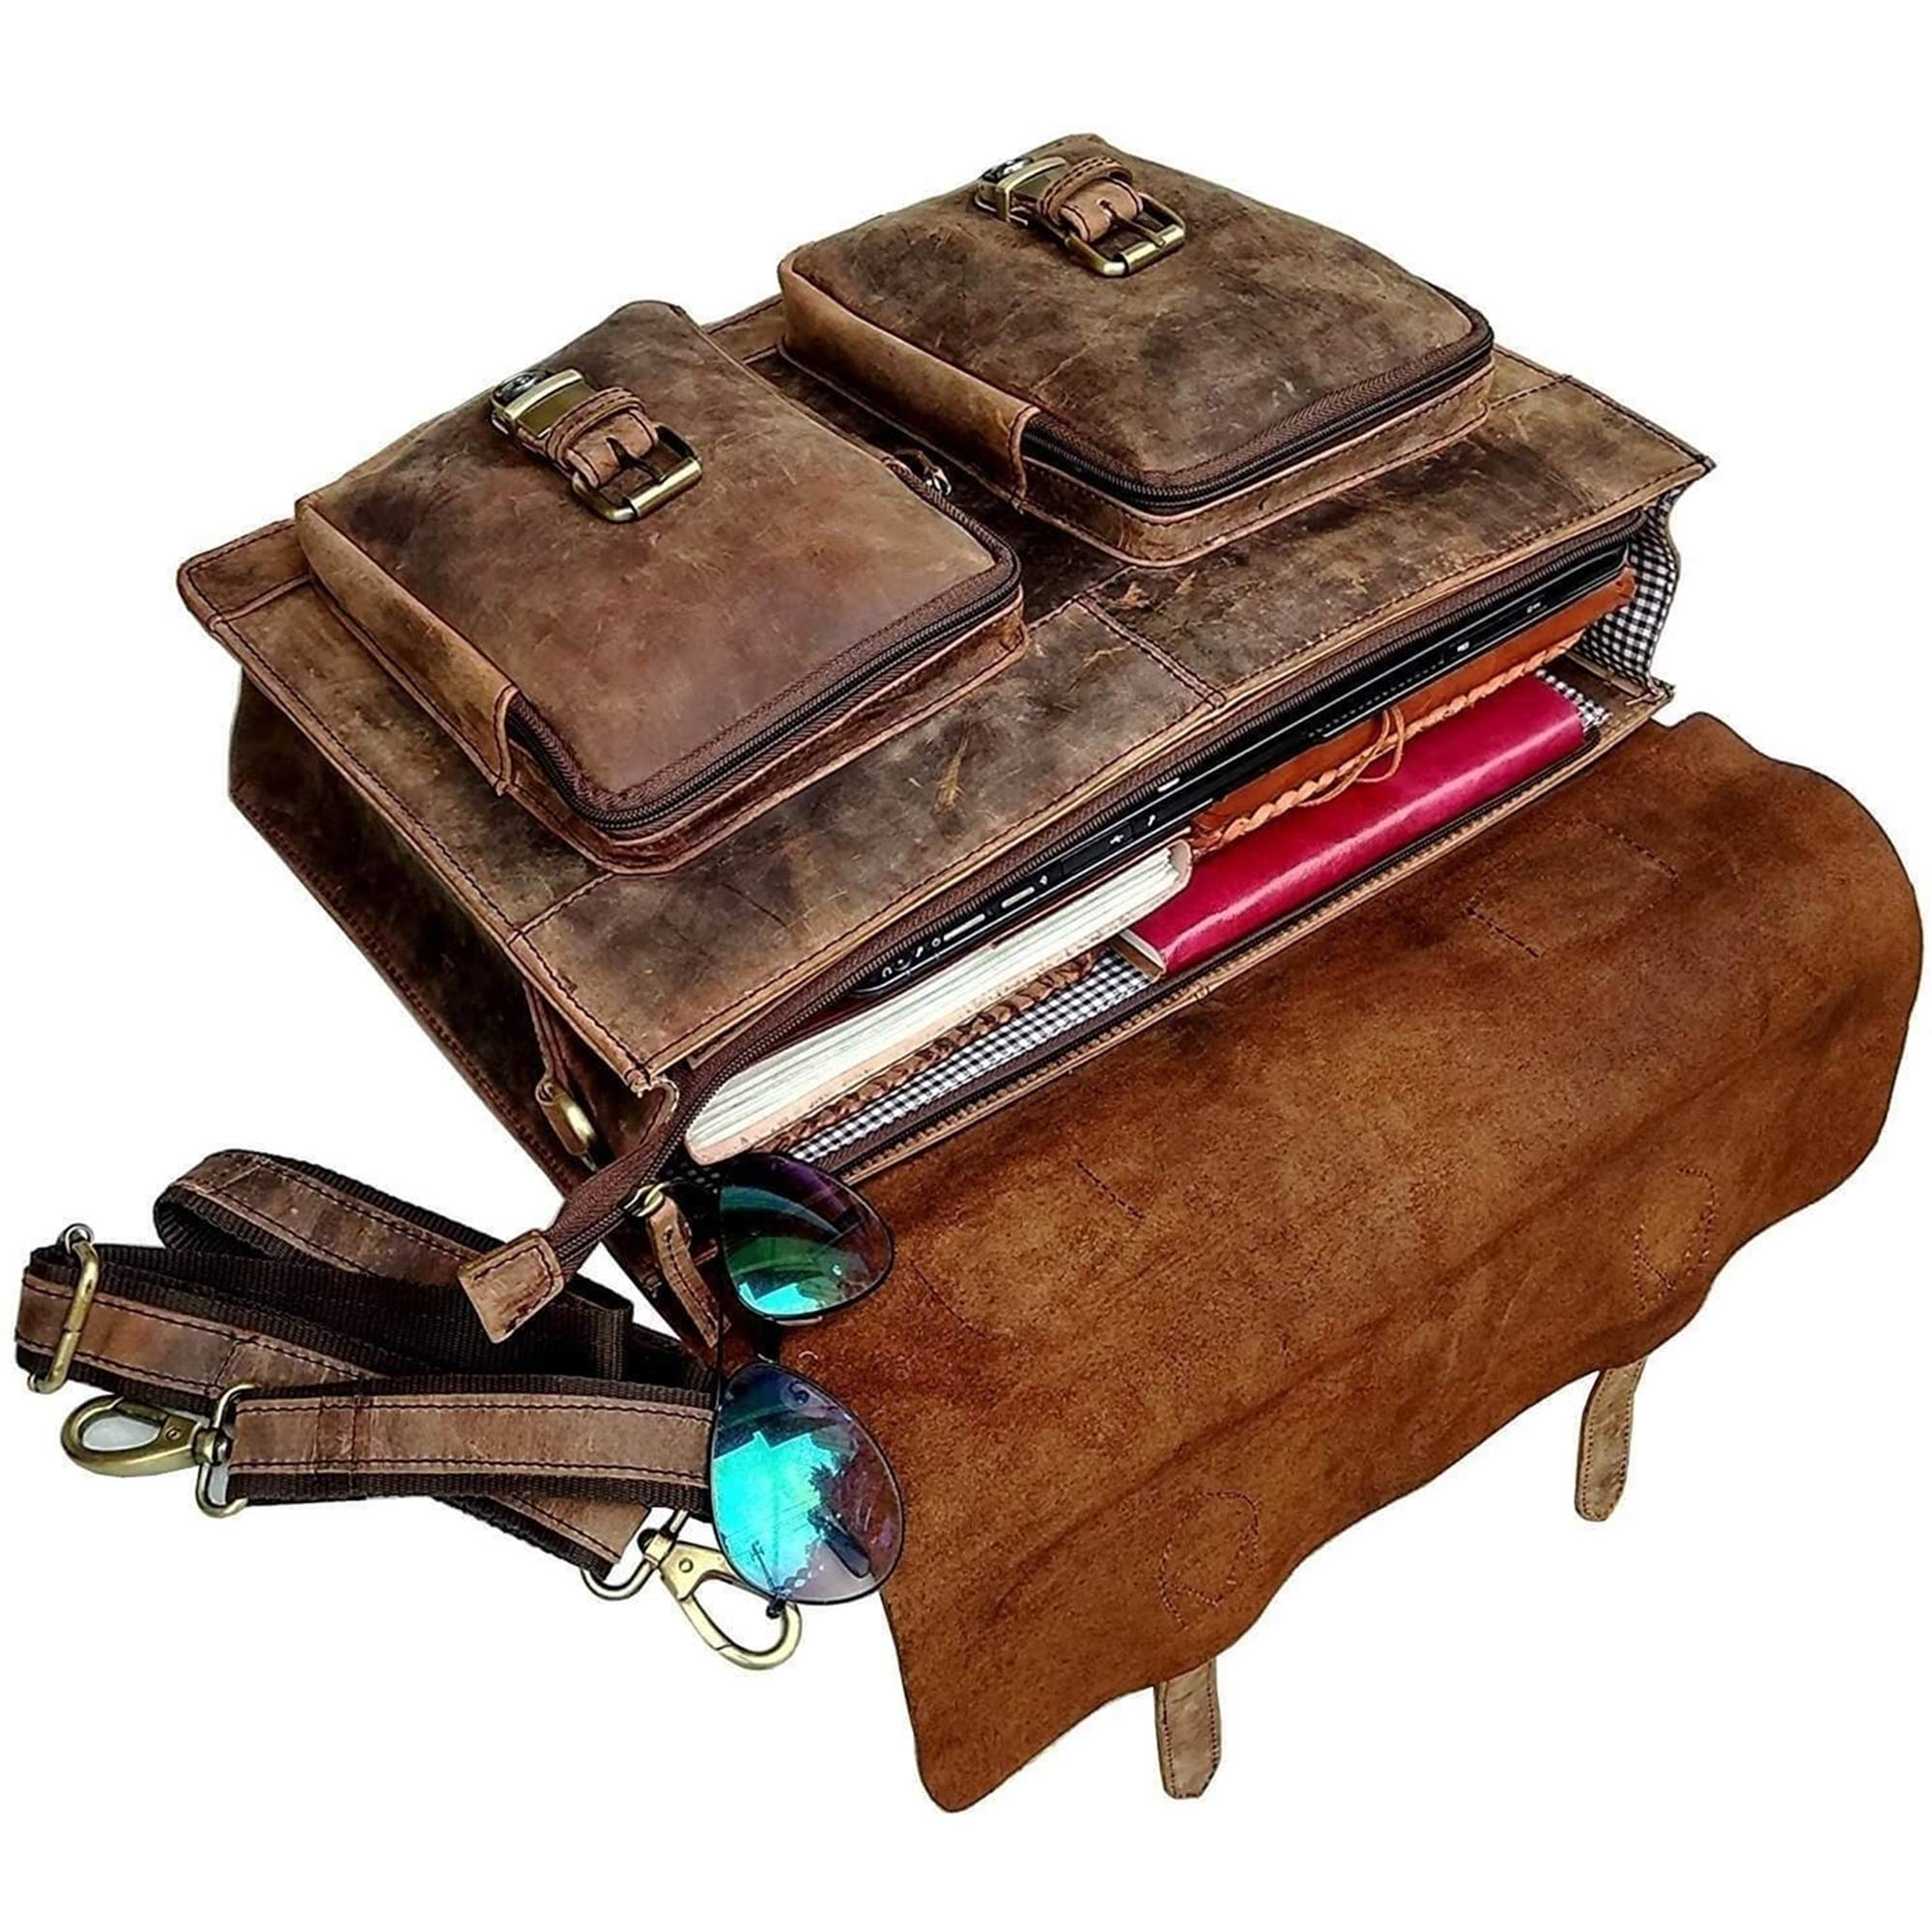 Retro Buffalo Hunter Leather Laptop Messenger Bag Office Briefcase College Bag by Urban Hide (18'') by Urban Hide (Image #5)